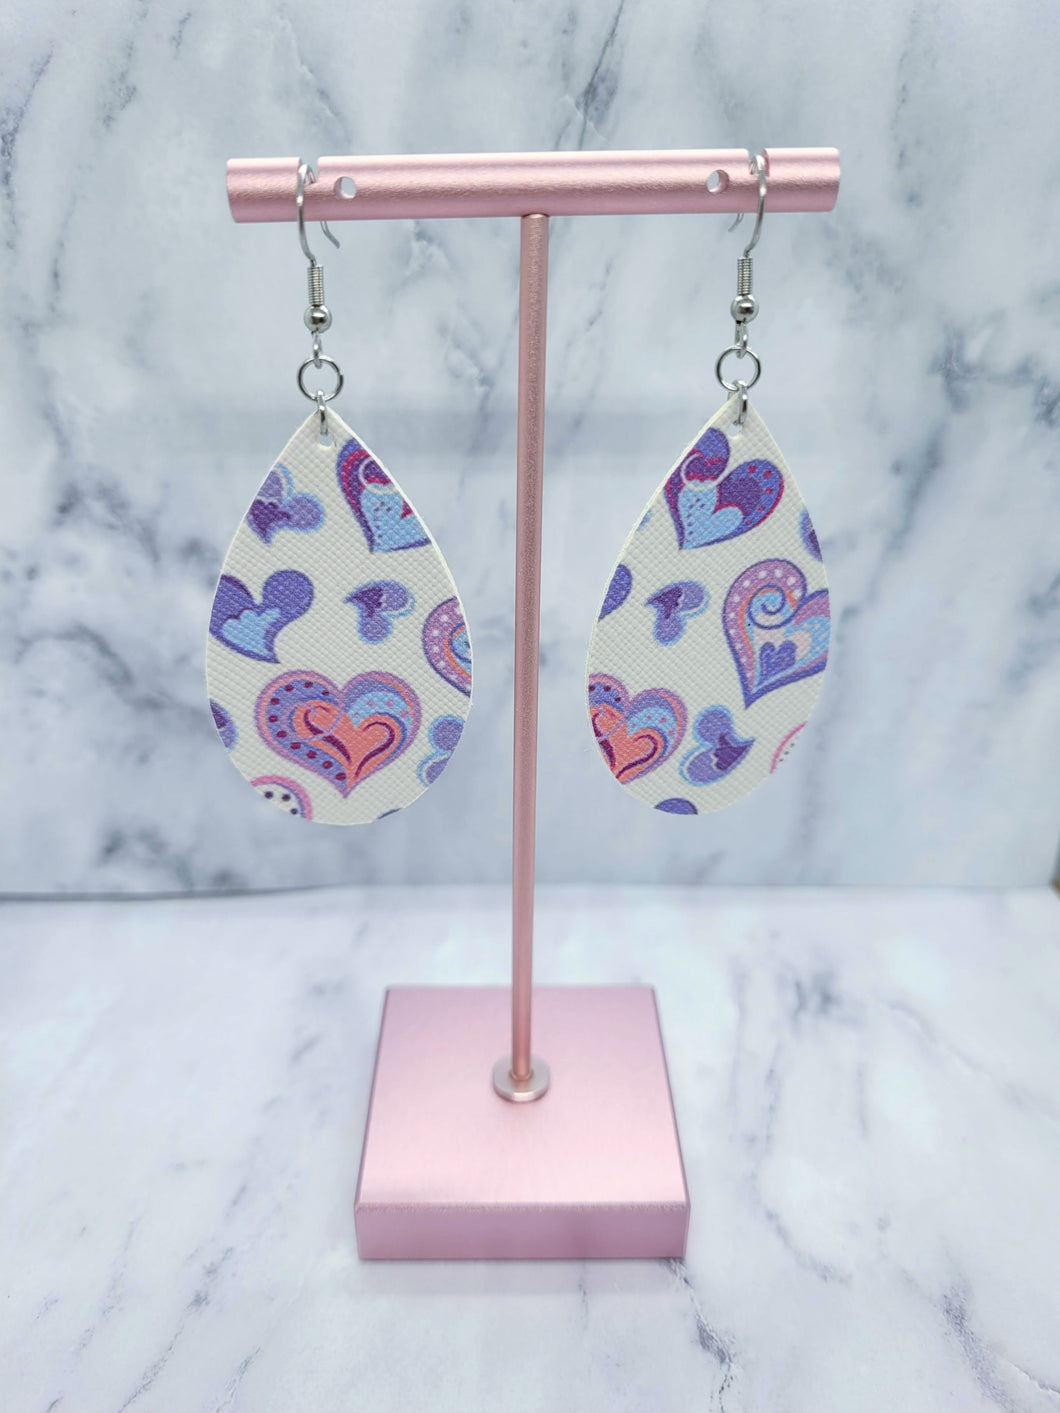 WHITE WITH PURPLE, BLUE, AND PINK HEARTS MAGNOLIA - FAUX LEATHER EARRINGS